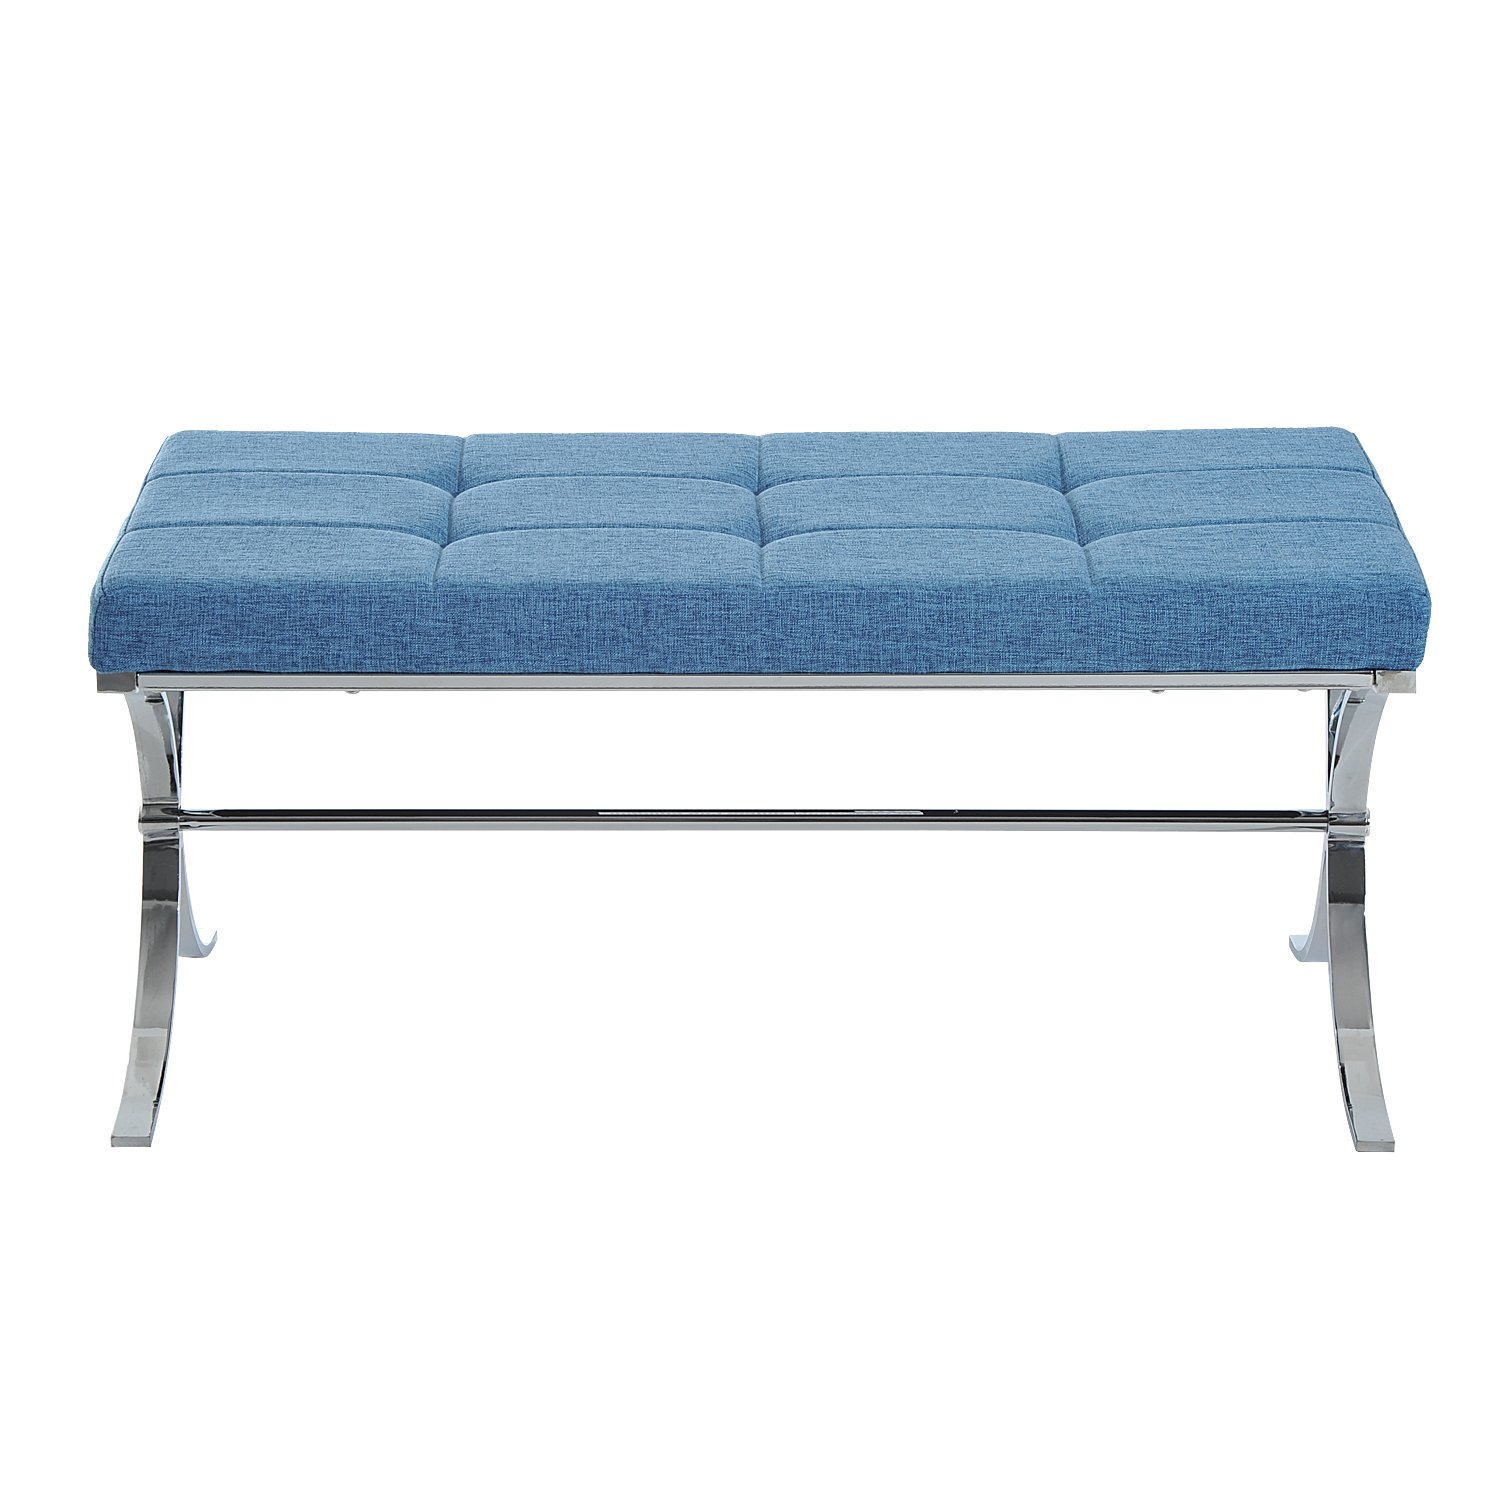 "Amazon.com: HomCom 39"" Contemporary Tufted Curved Leg Entryway Bench ..."